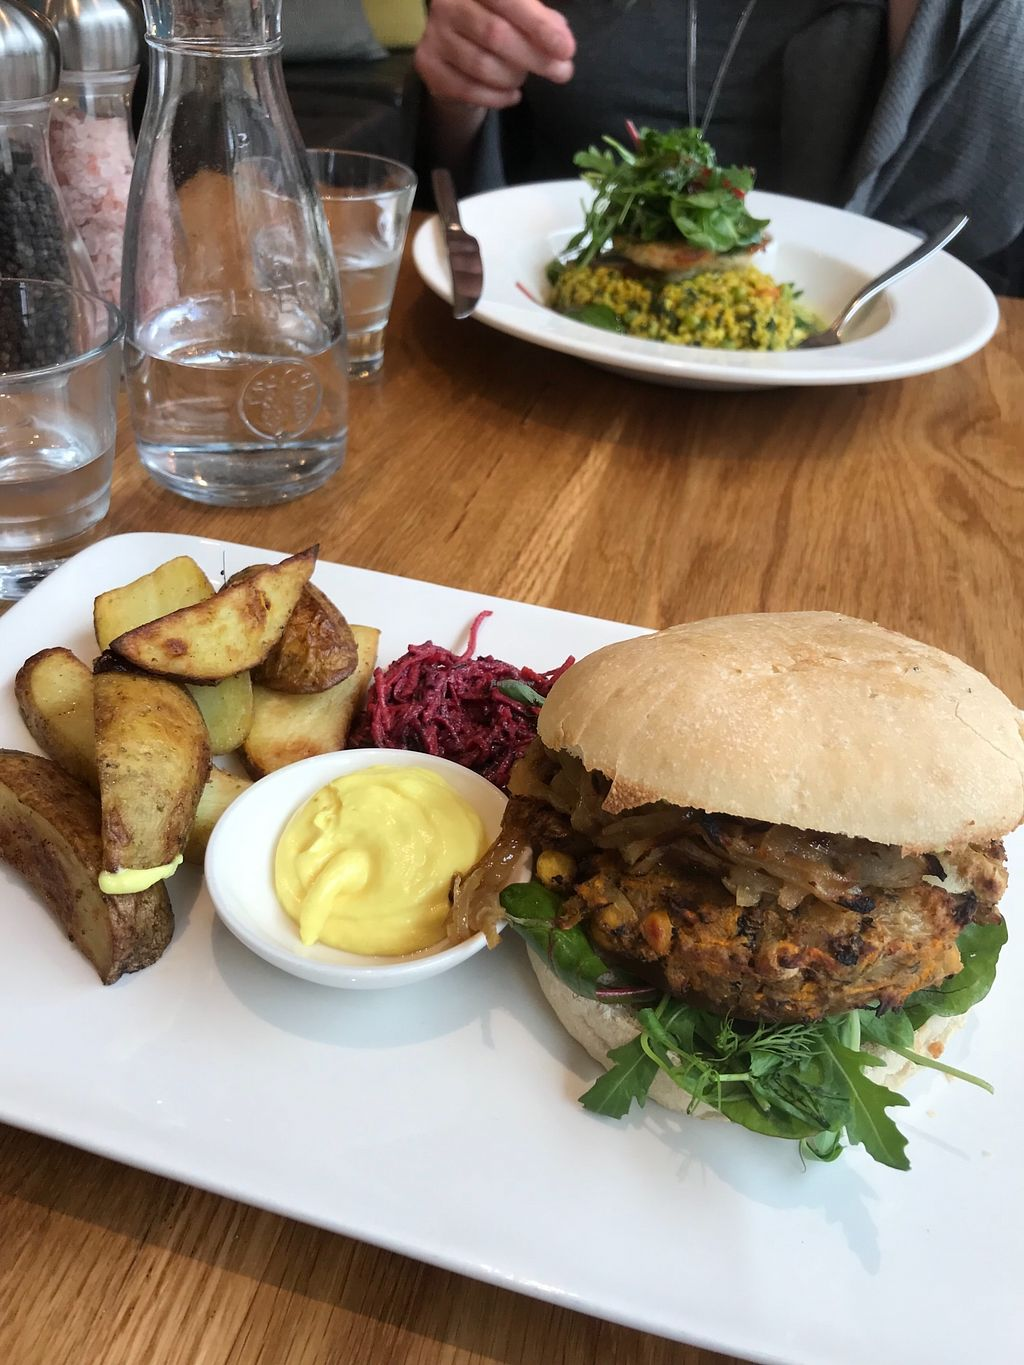 """Photo of Loudons Cafe and Bakery  by <a href=""""/members/profile/AshleighC"""">AshleighC</a> <br/>Loudons veggie burger (confirmed all vegan) <br/> March 15, 2018  - <a href='/contact/abuse/image/105784/370983'>Report</a>"""